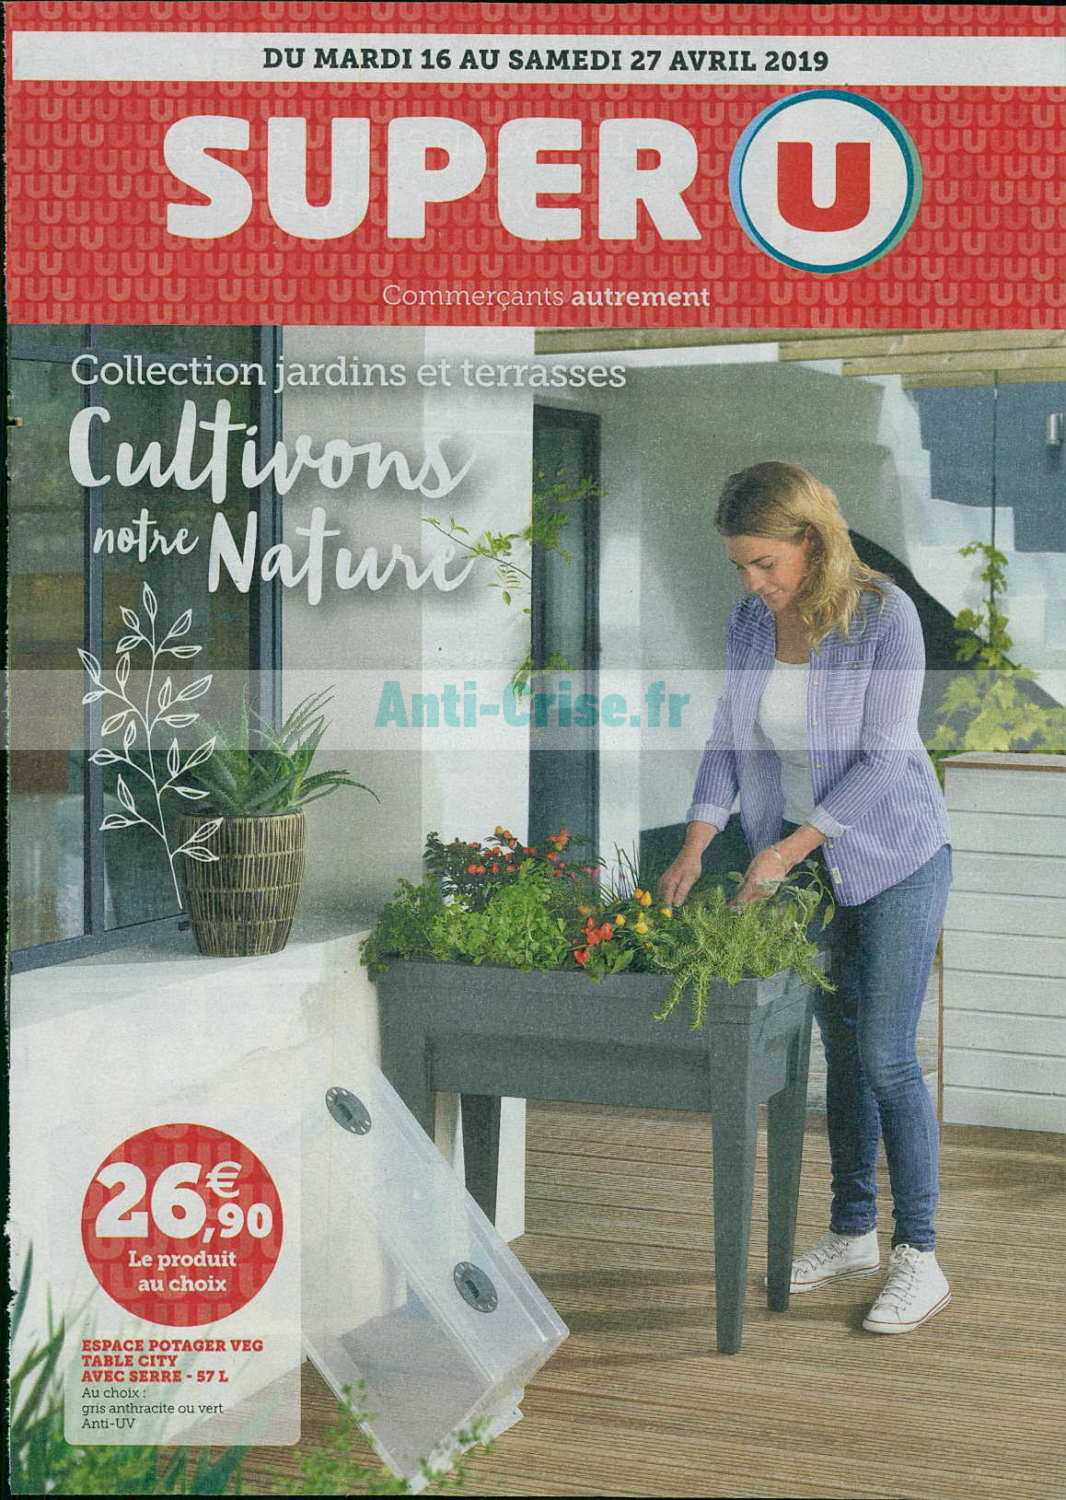 Catalogue Super U du 16 au 27 avril 2019 (Jardin) - Catalogues ...